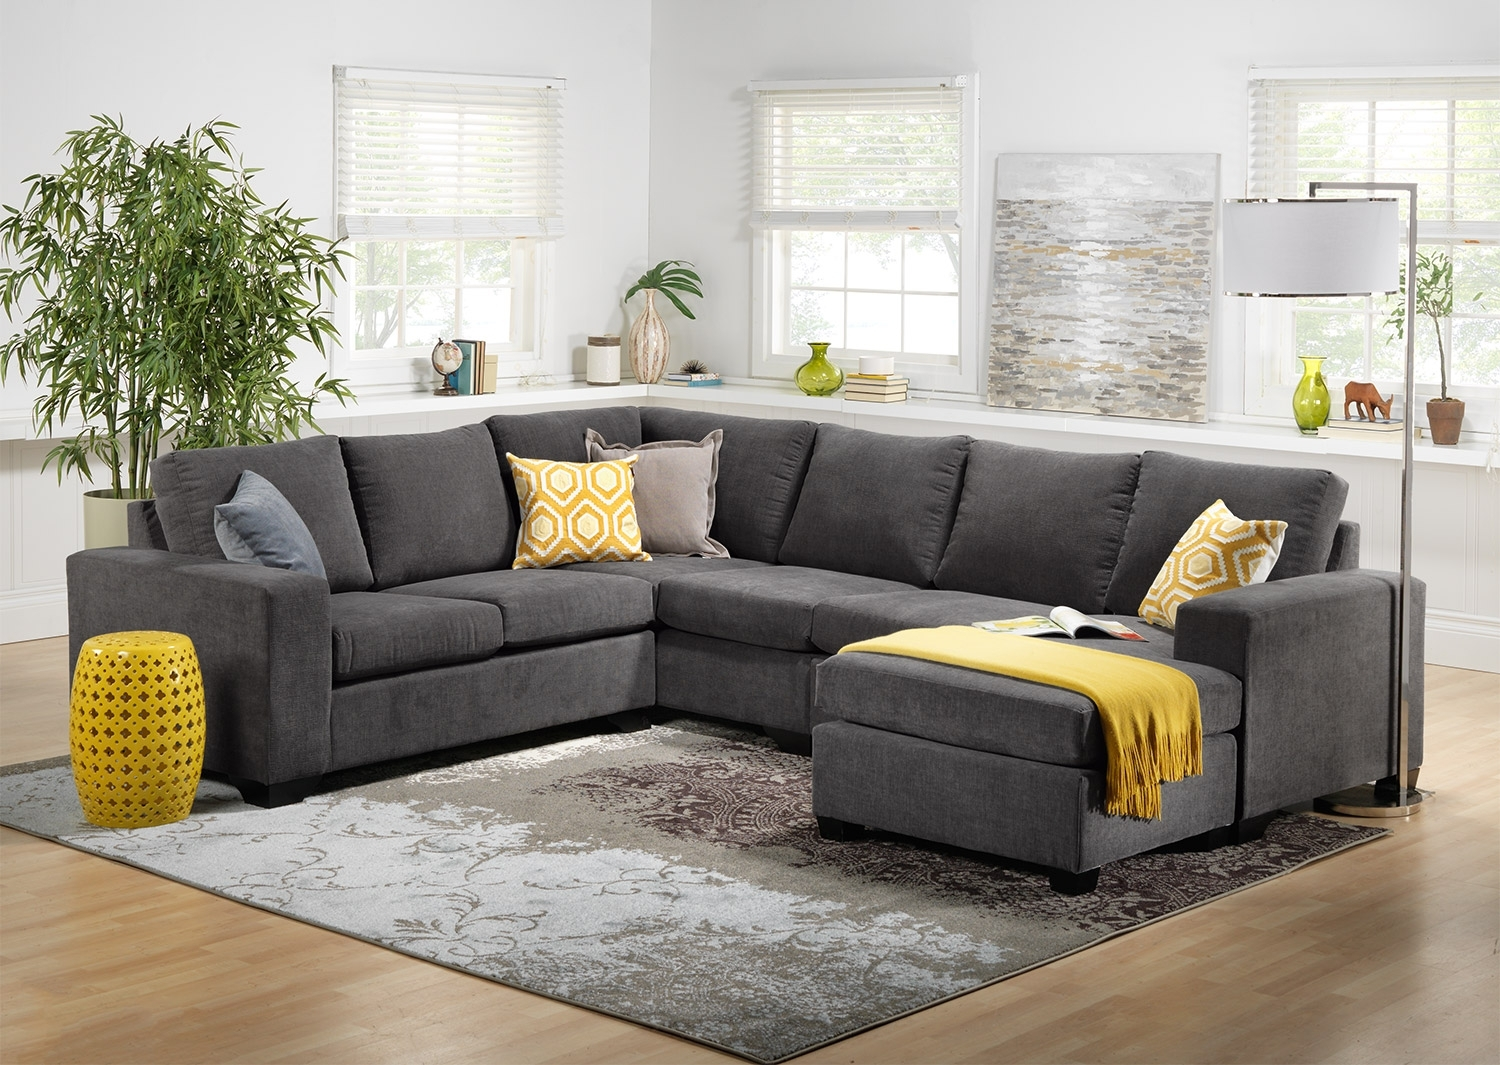 sectional sofas ontario canada sofasworld 10 collection of sofa ideas